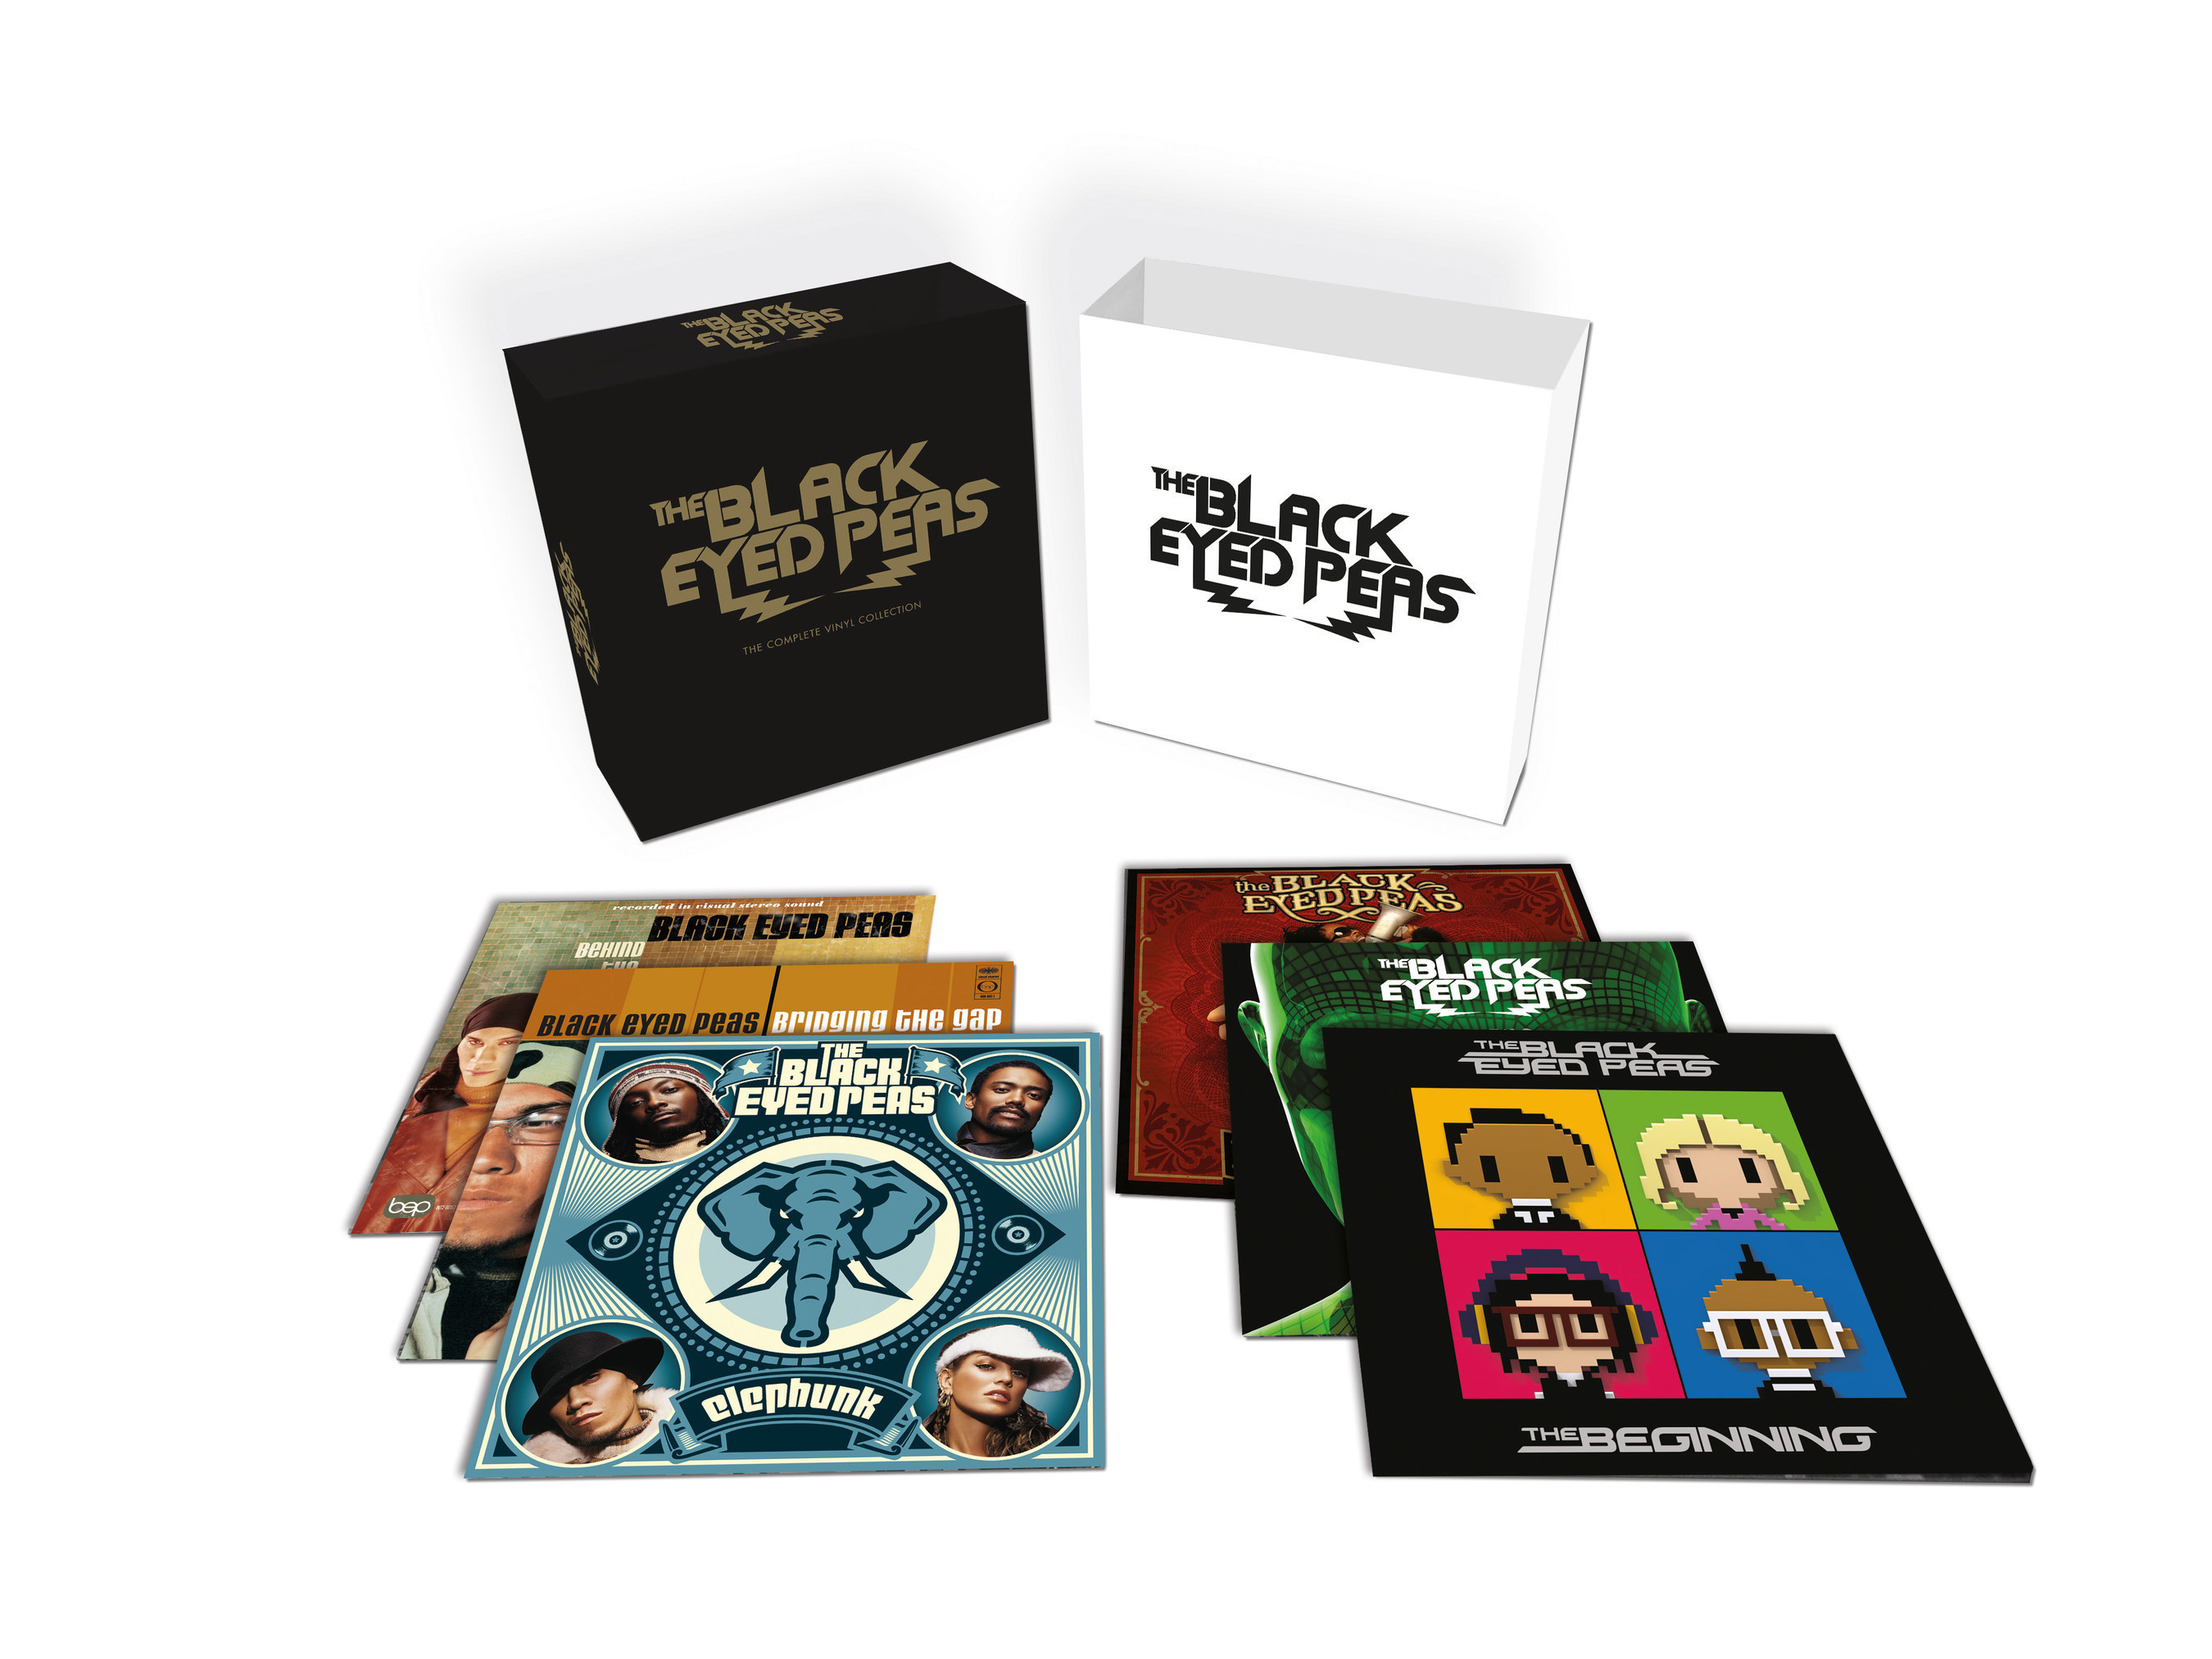 UMe TO RELEASE LIMITED EDITION SIX-DOUBLE-LP VINYL BOX SET, THE BLACK EYED PEAS -- THE COMPLETE VINYL COLLECTION, WITH ALL SIX INTERSCOPE TITLES ALSO AVAILABLE AS INDIVIDUAL LPs. September 30th release features group's evolution from 1998's debut Behind the Front and breakthroughs Elephunk, Monkey Business and The E.N.D., to their most recent, 2010's The Beginning